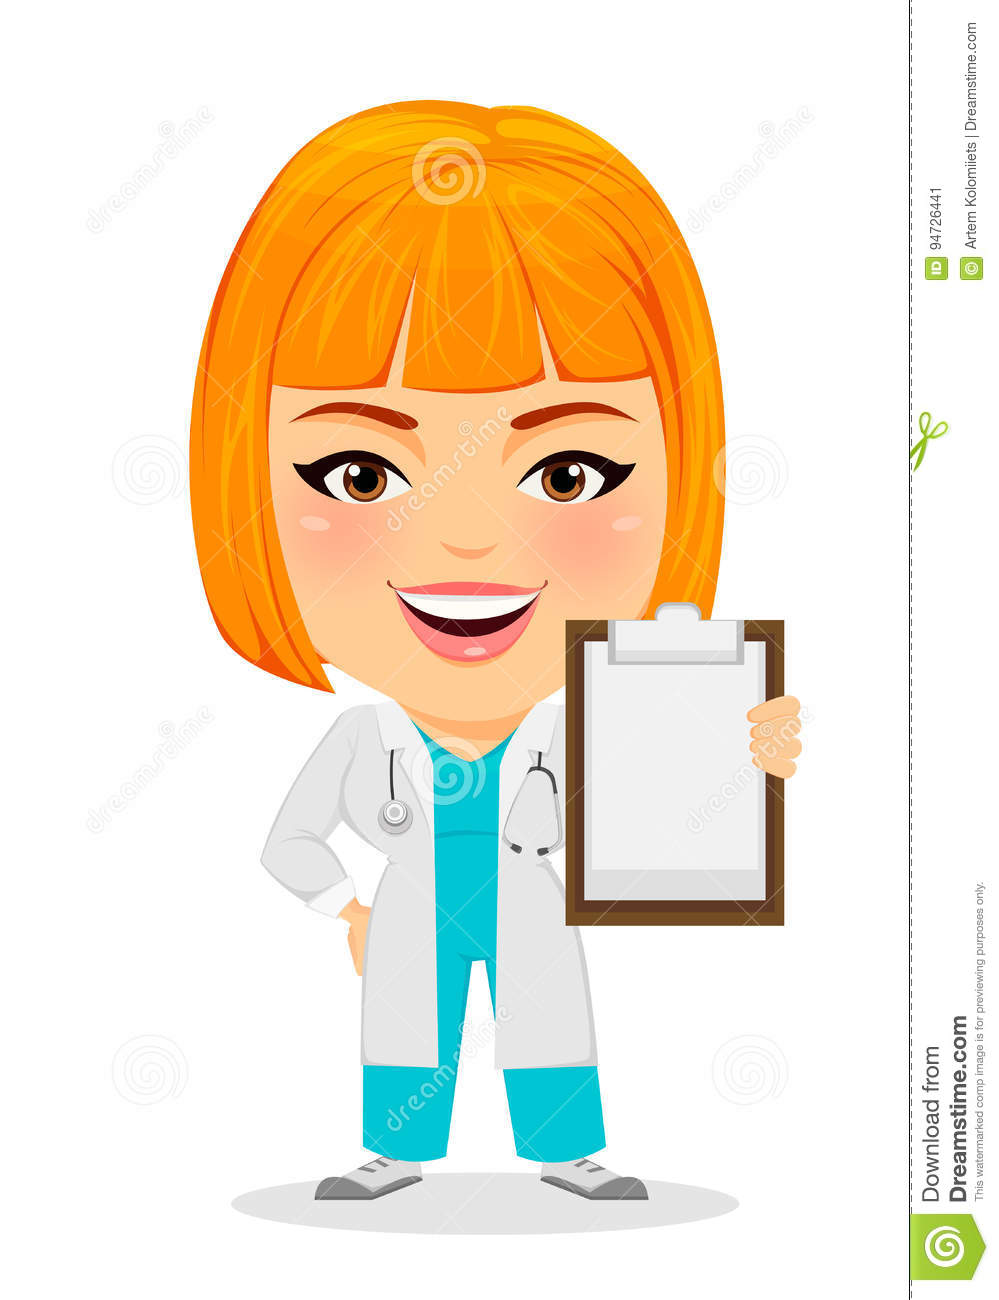 Cartoon Characters With Big Heads : Woman holding clipboard stock illustrations